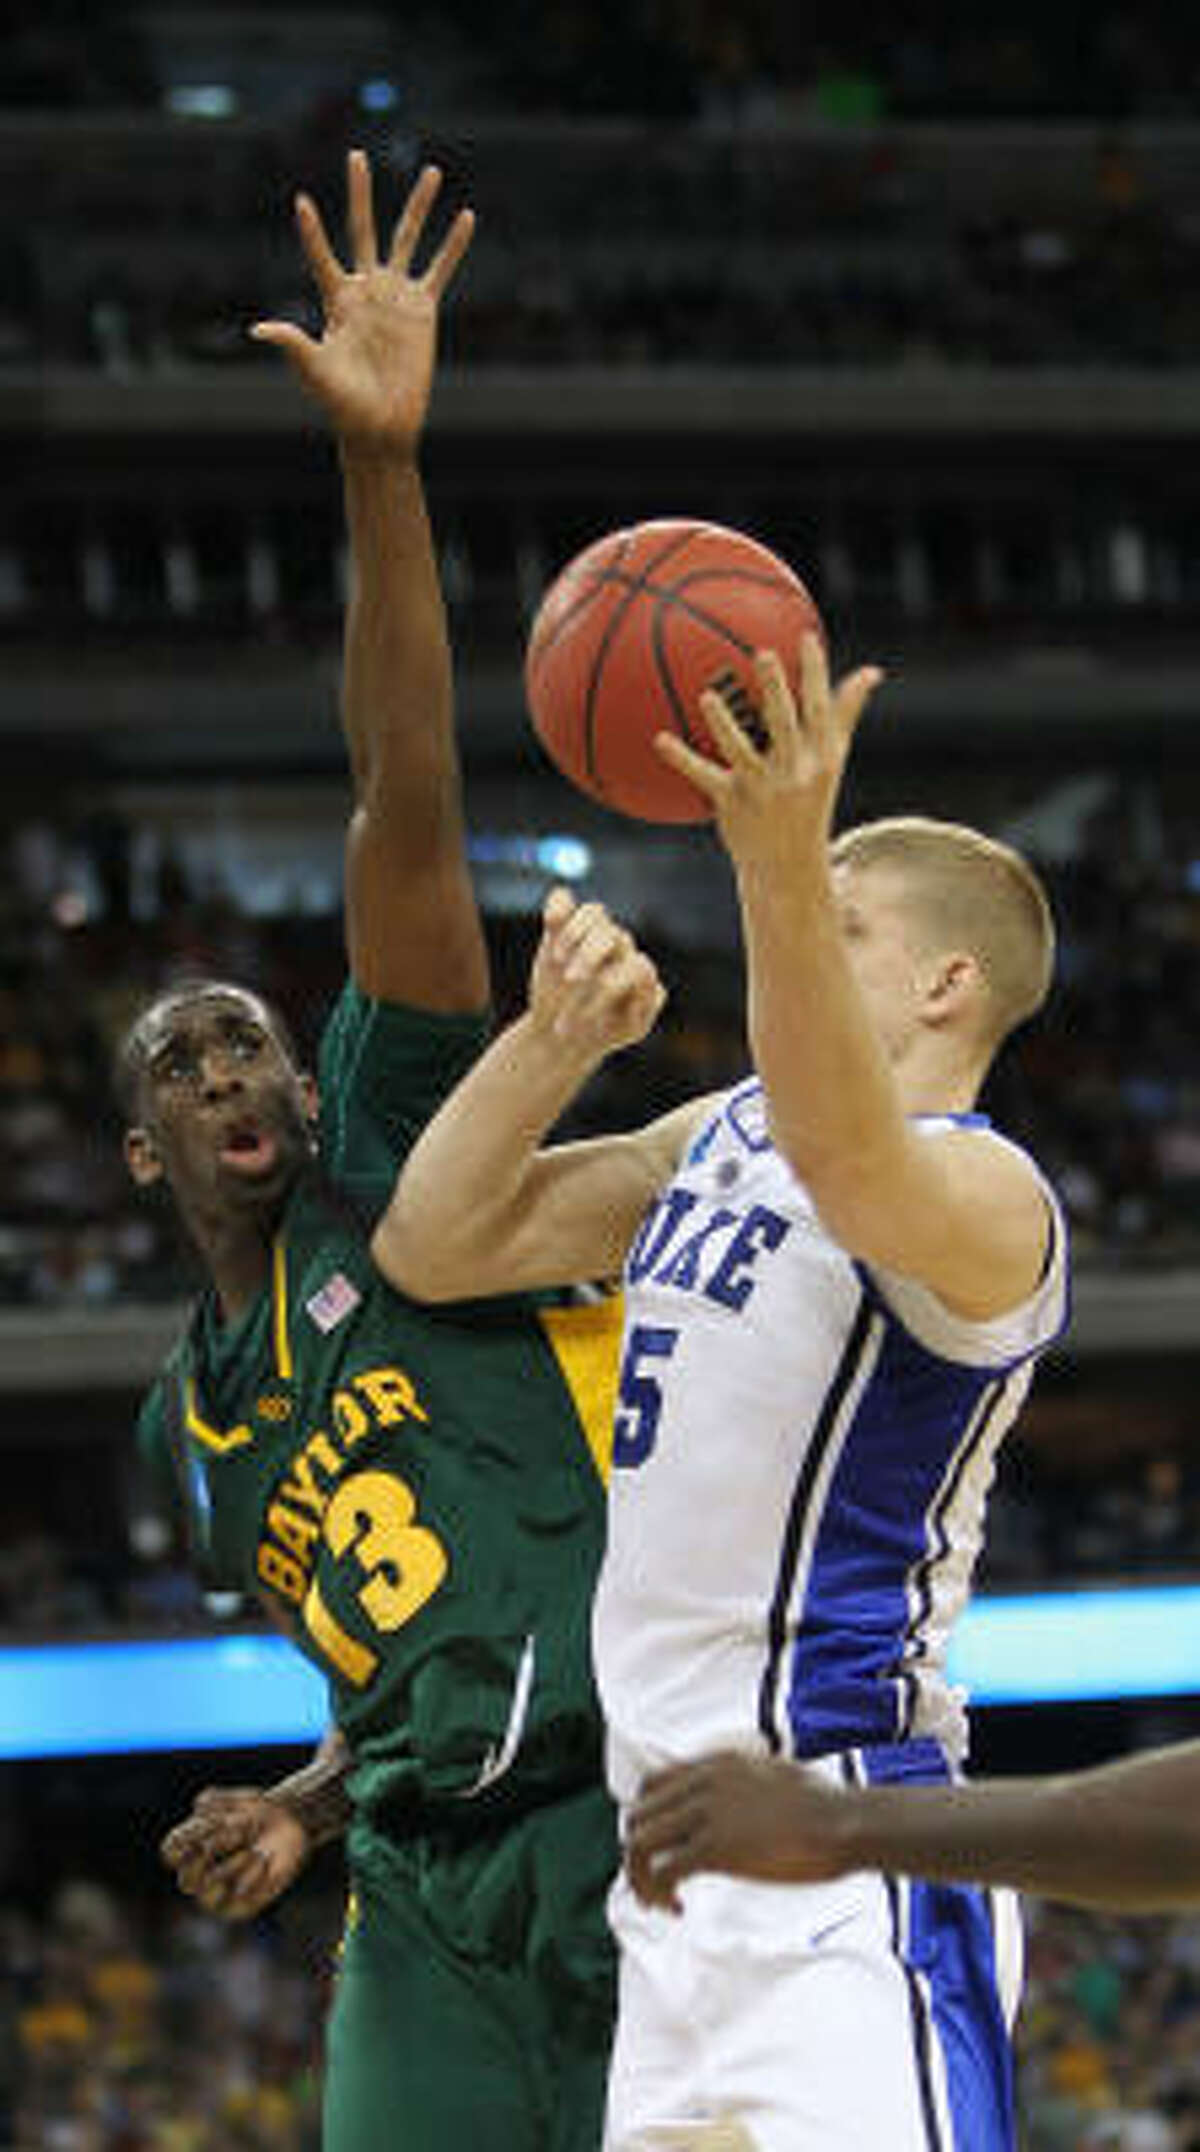 Baylor forward Ekpe Udoh (13) filled the stats sheet against Duke finishing with 18 points, 10 rebounds, six assists and five blocks.